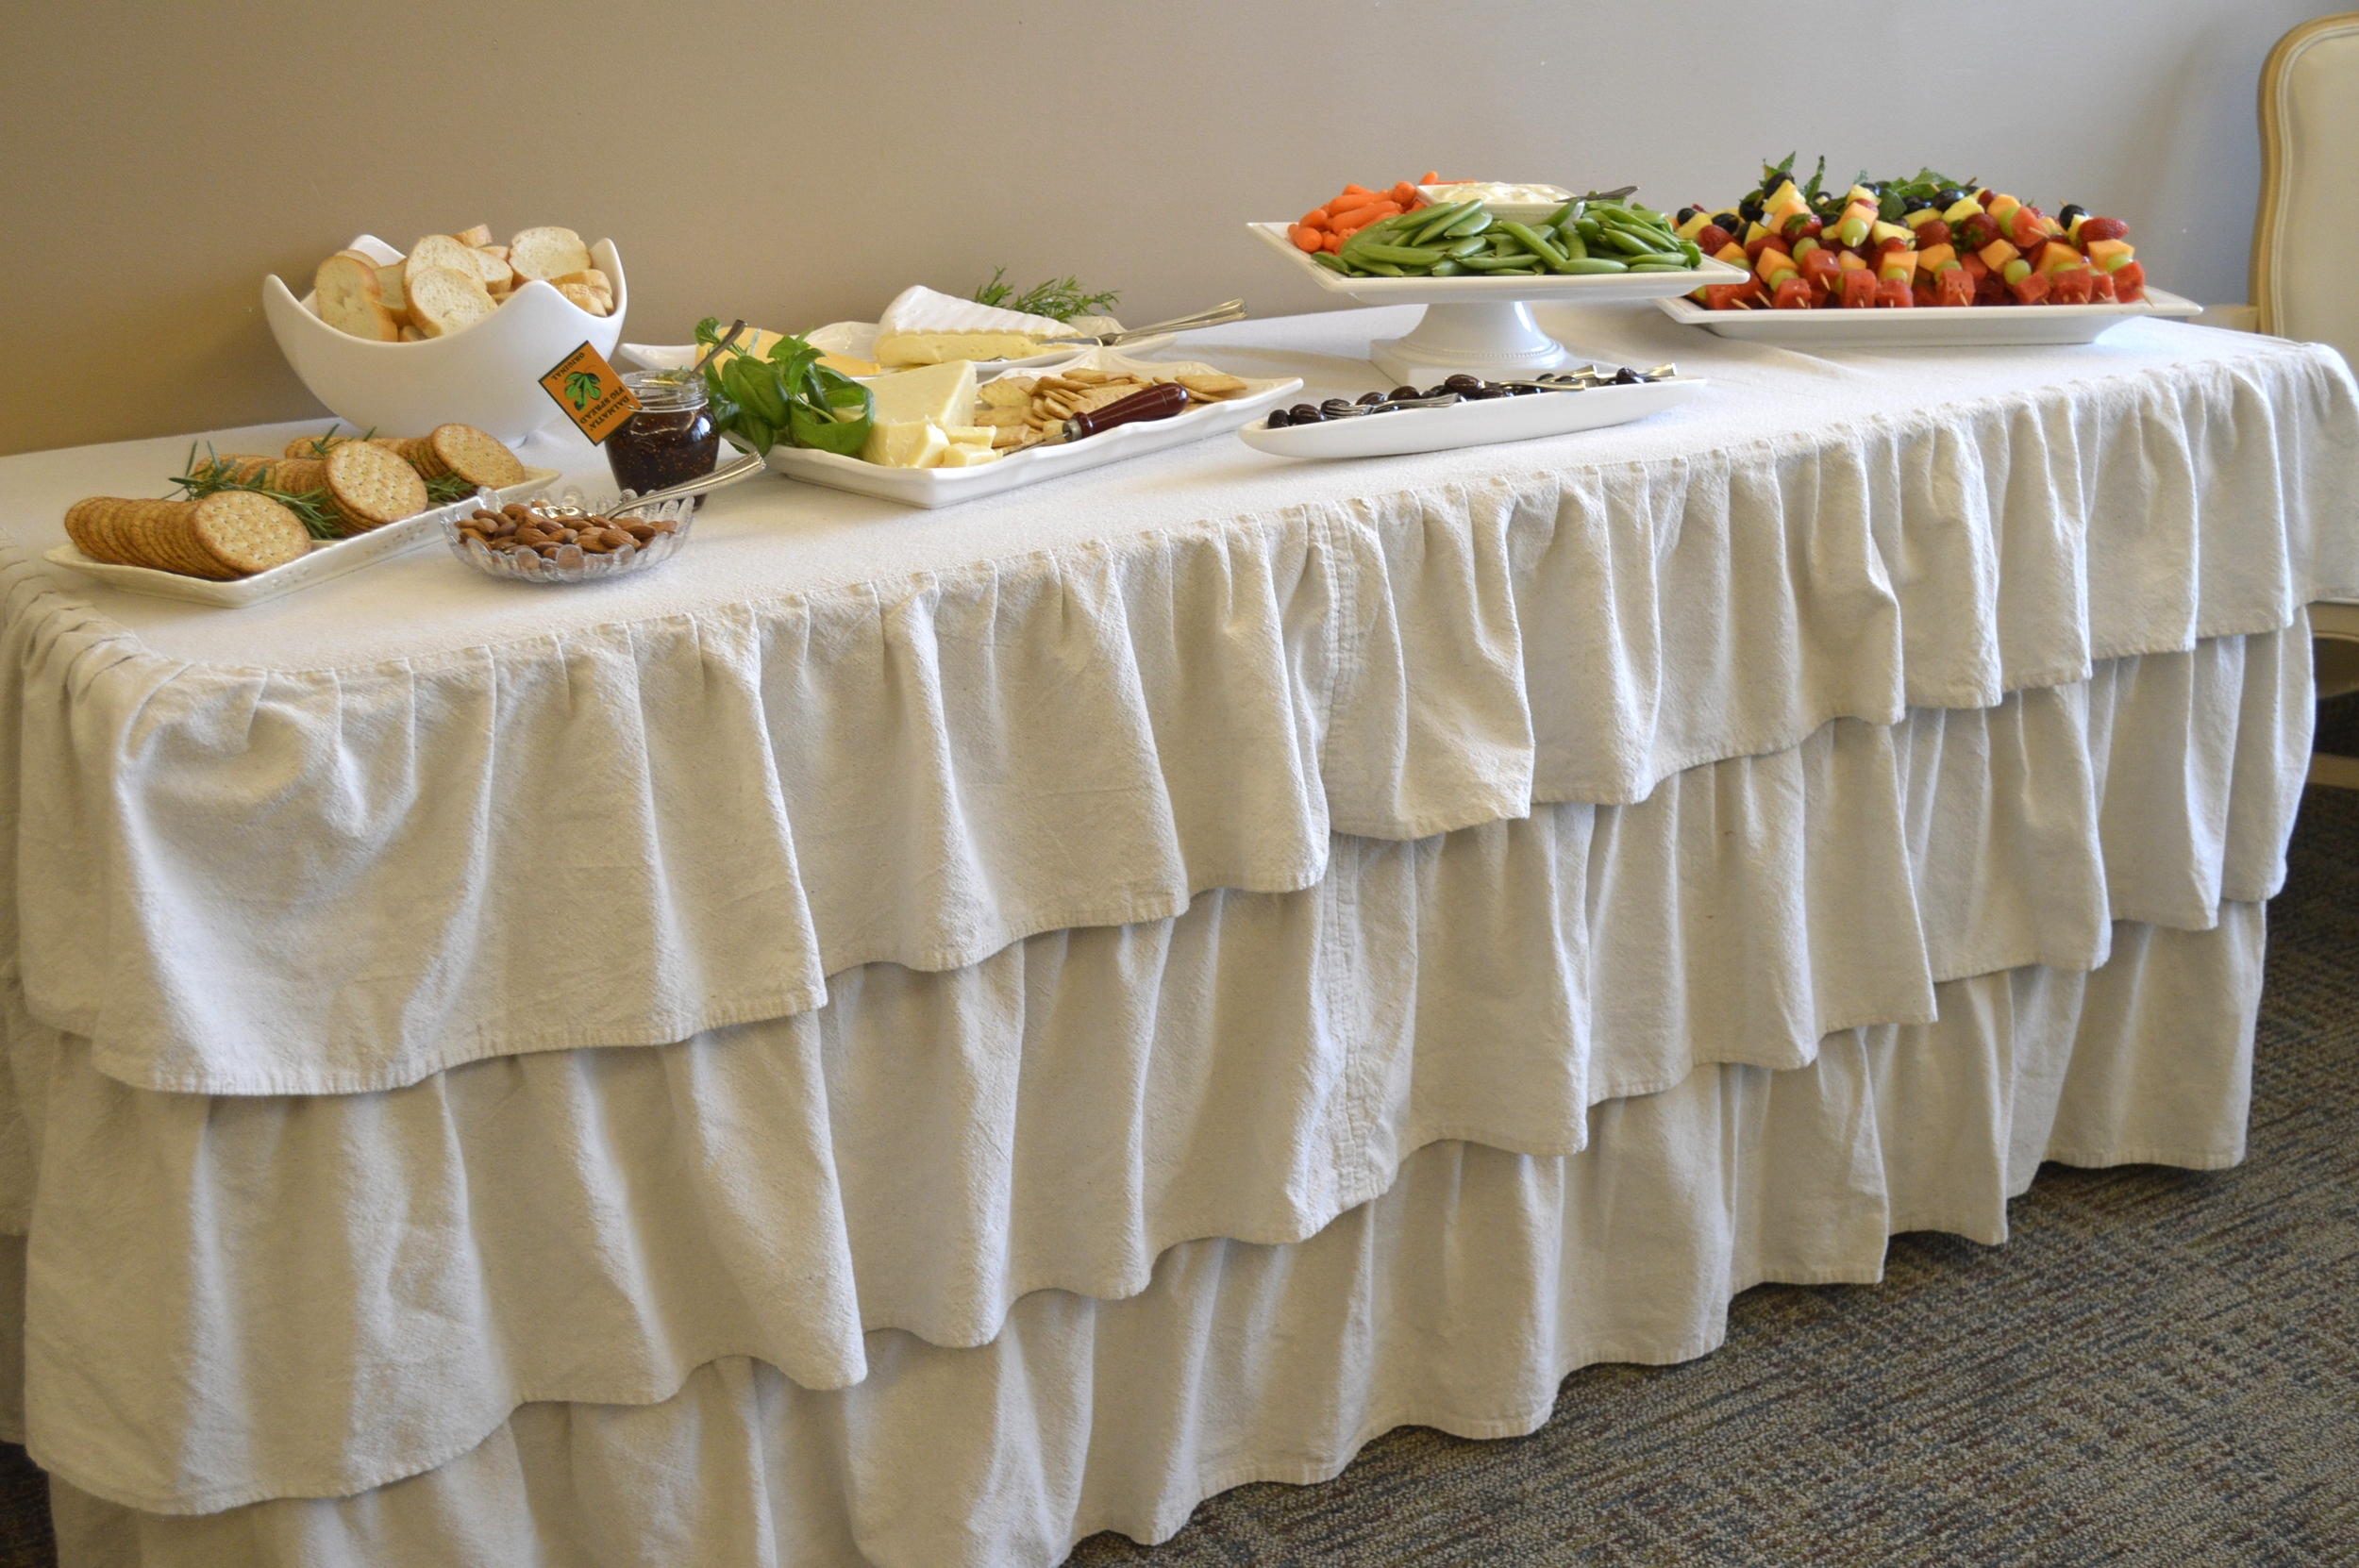 Assorted cheeses and crackers, nuts, olives, fresh veggies, and fruit kabobs...